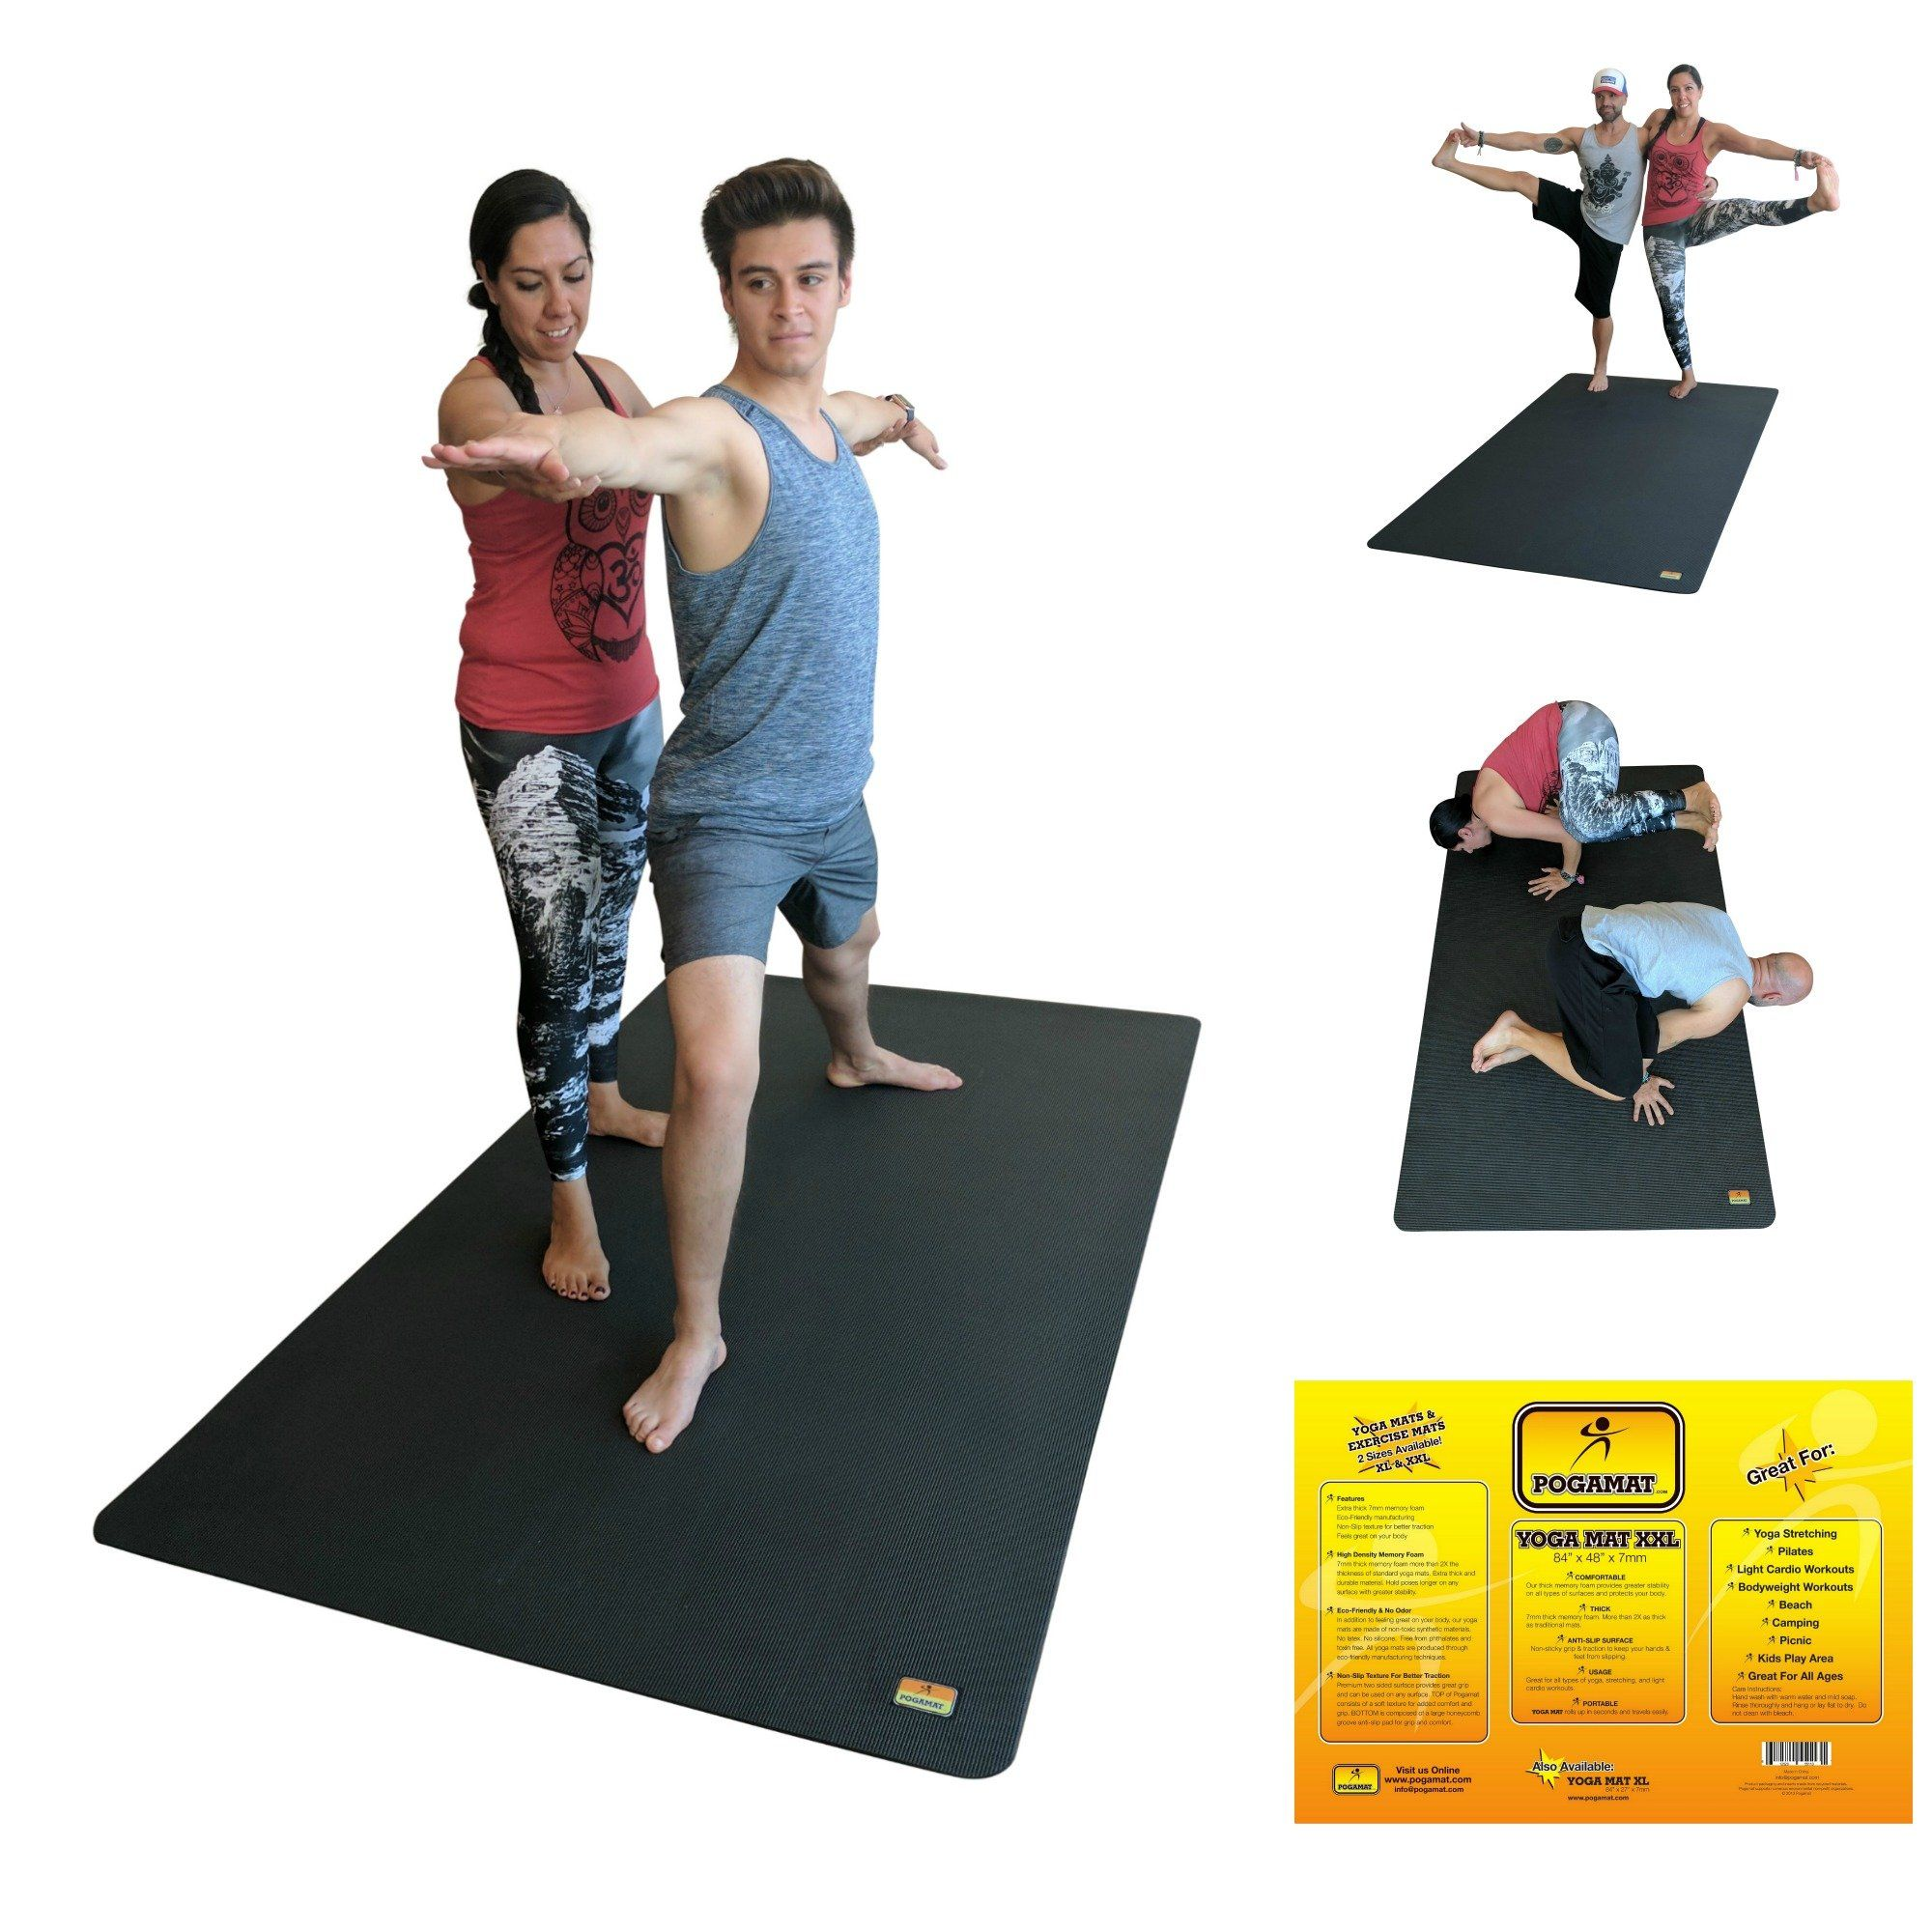 Pogamat Large Yoga Mat And Stretching Mat 7ft X 4ft X 7mm Thick 84x 48 Antitear Non Slip Exercise Yoga Mats Extra Cardio Workout Mat Exercises Thick Yoga Mats